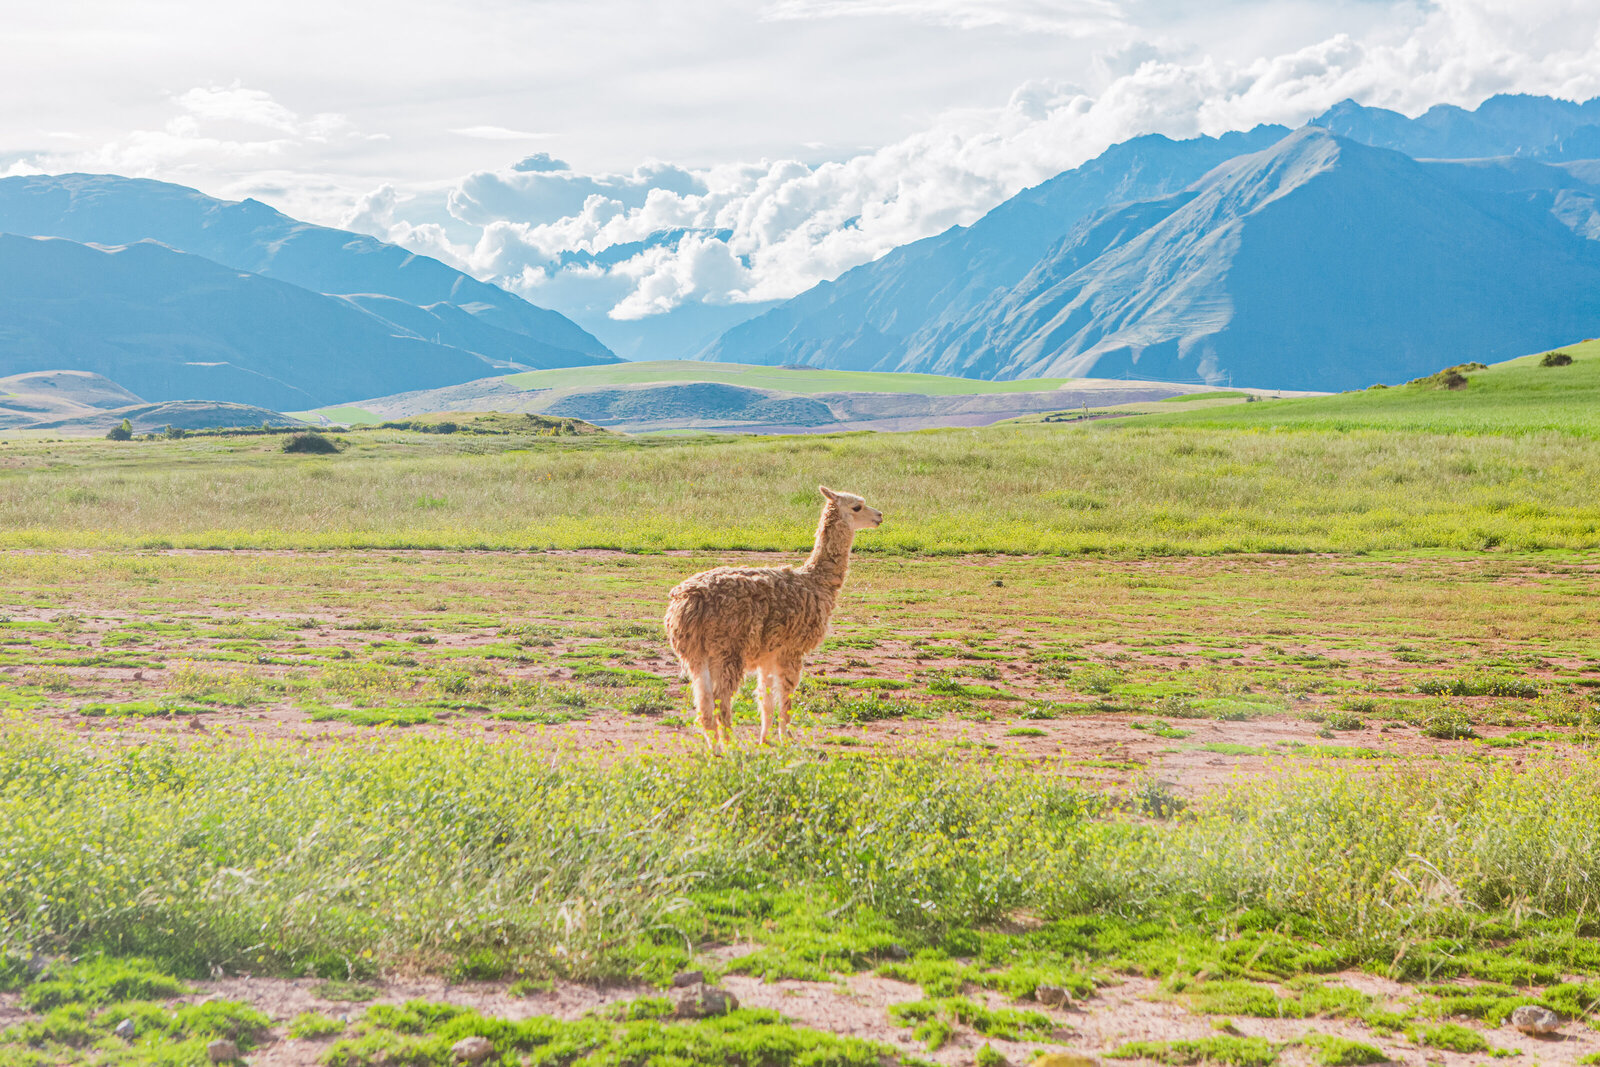 032-KBP-Peru-Cusco-Sacred-Valley-Llamas-002